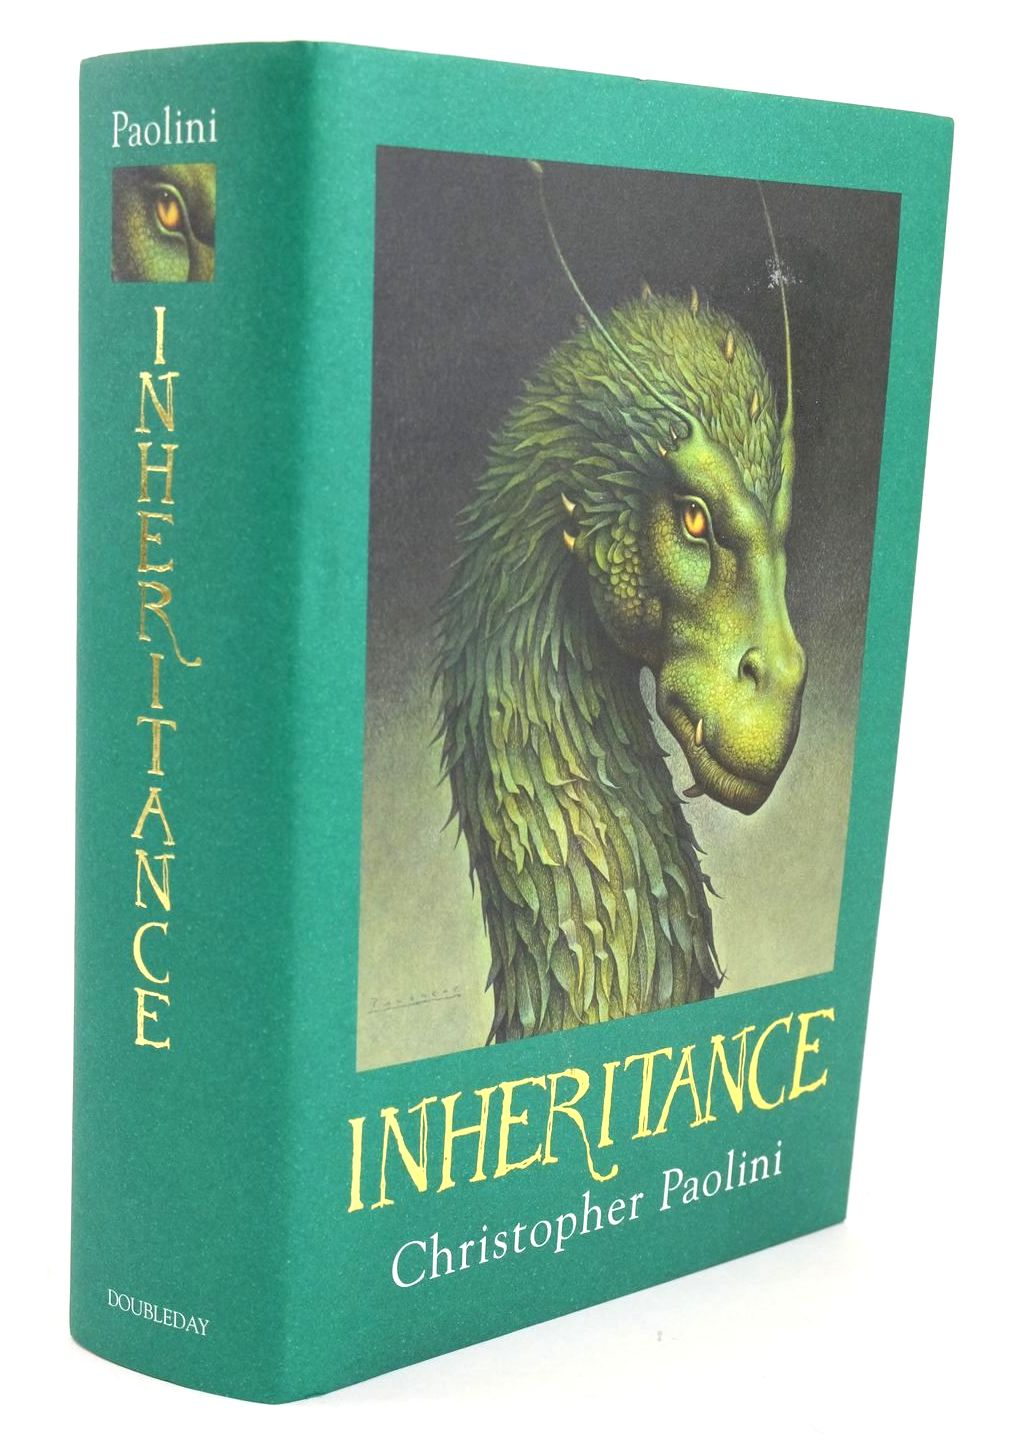 Photo of INHERITANCE OR THE VAULT OF SOULS written by Paolini, Christopher published by Doubleday (STOCK CODE: 1319394)  for sale by Stella & Rose's Books